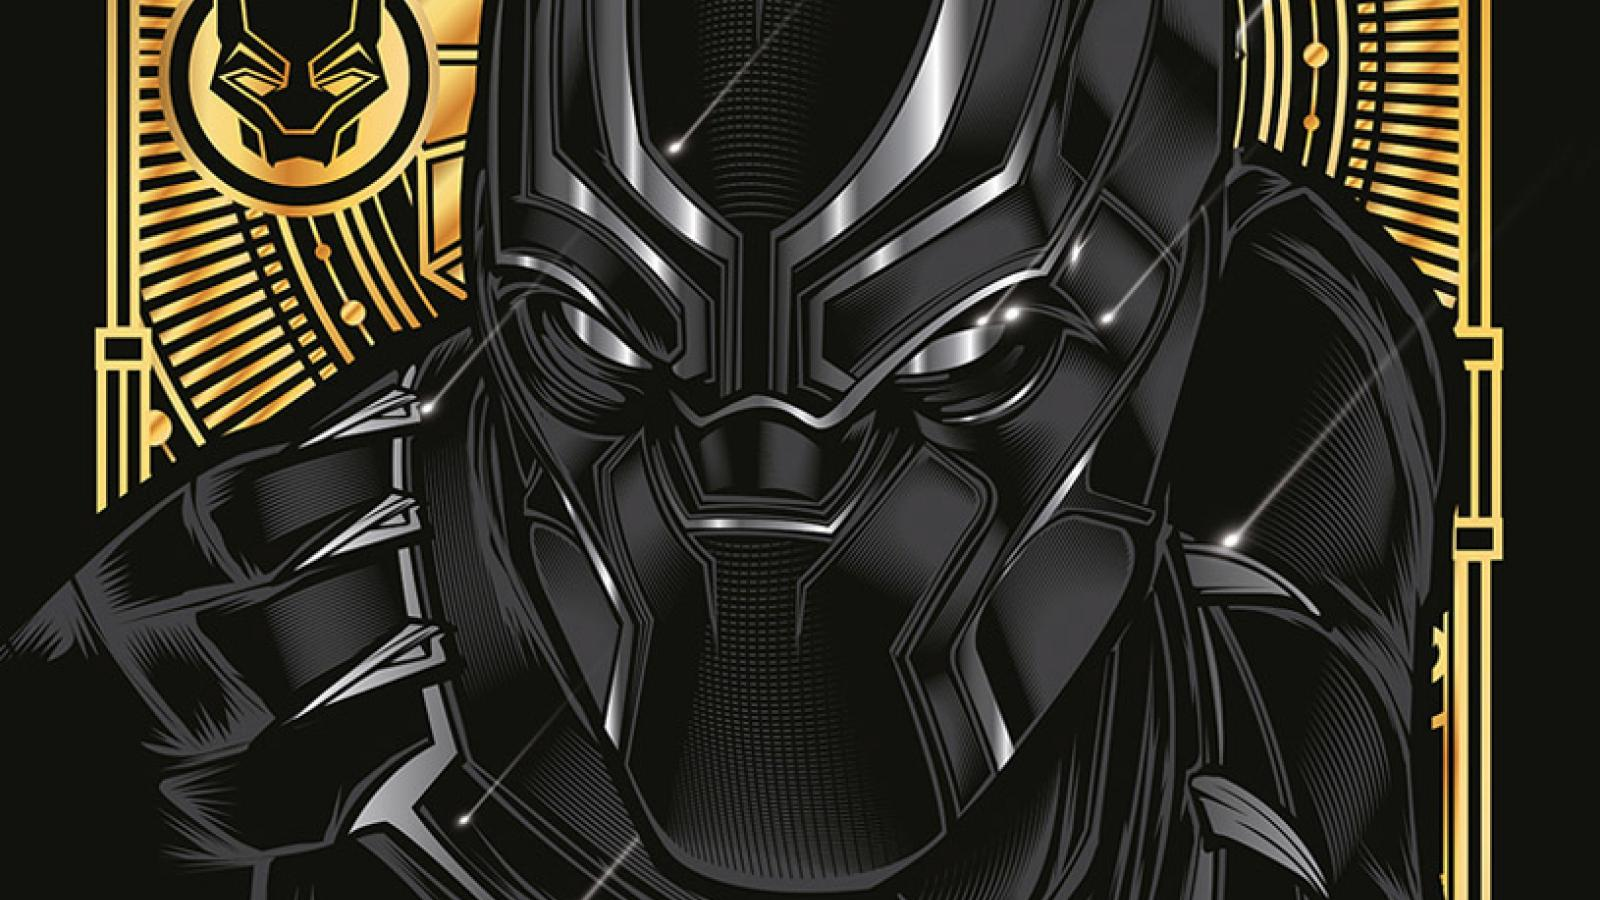 Awesome Illustrations for Black Panther X Clarks Originals